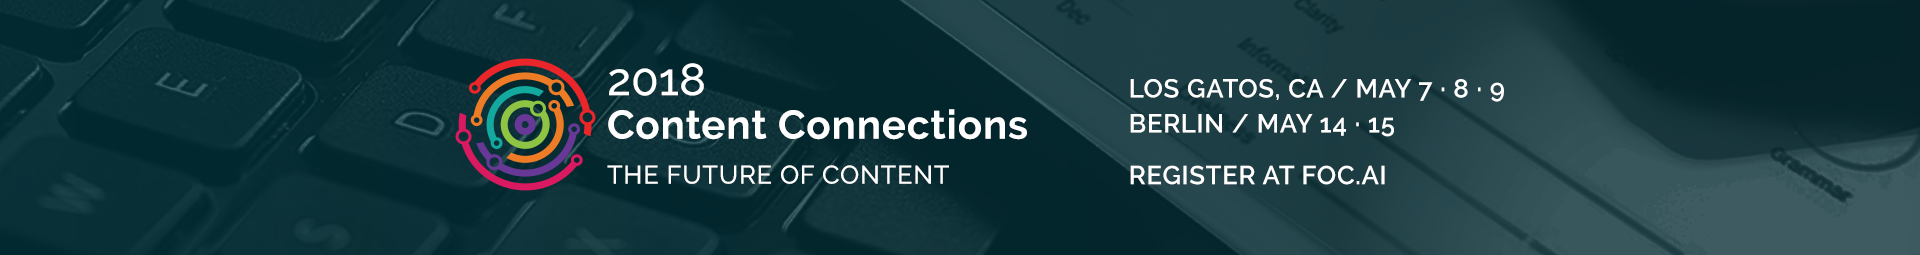 Content Connections